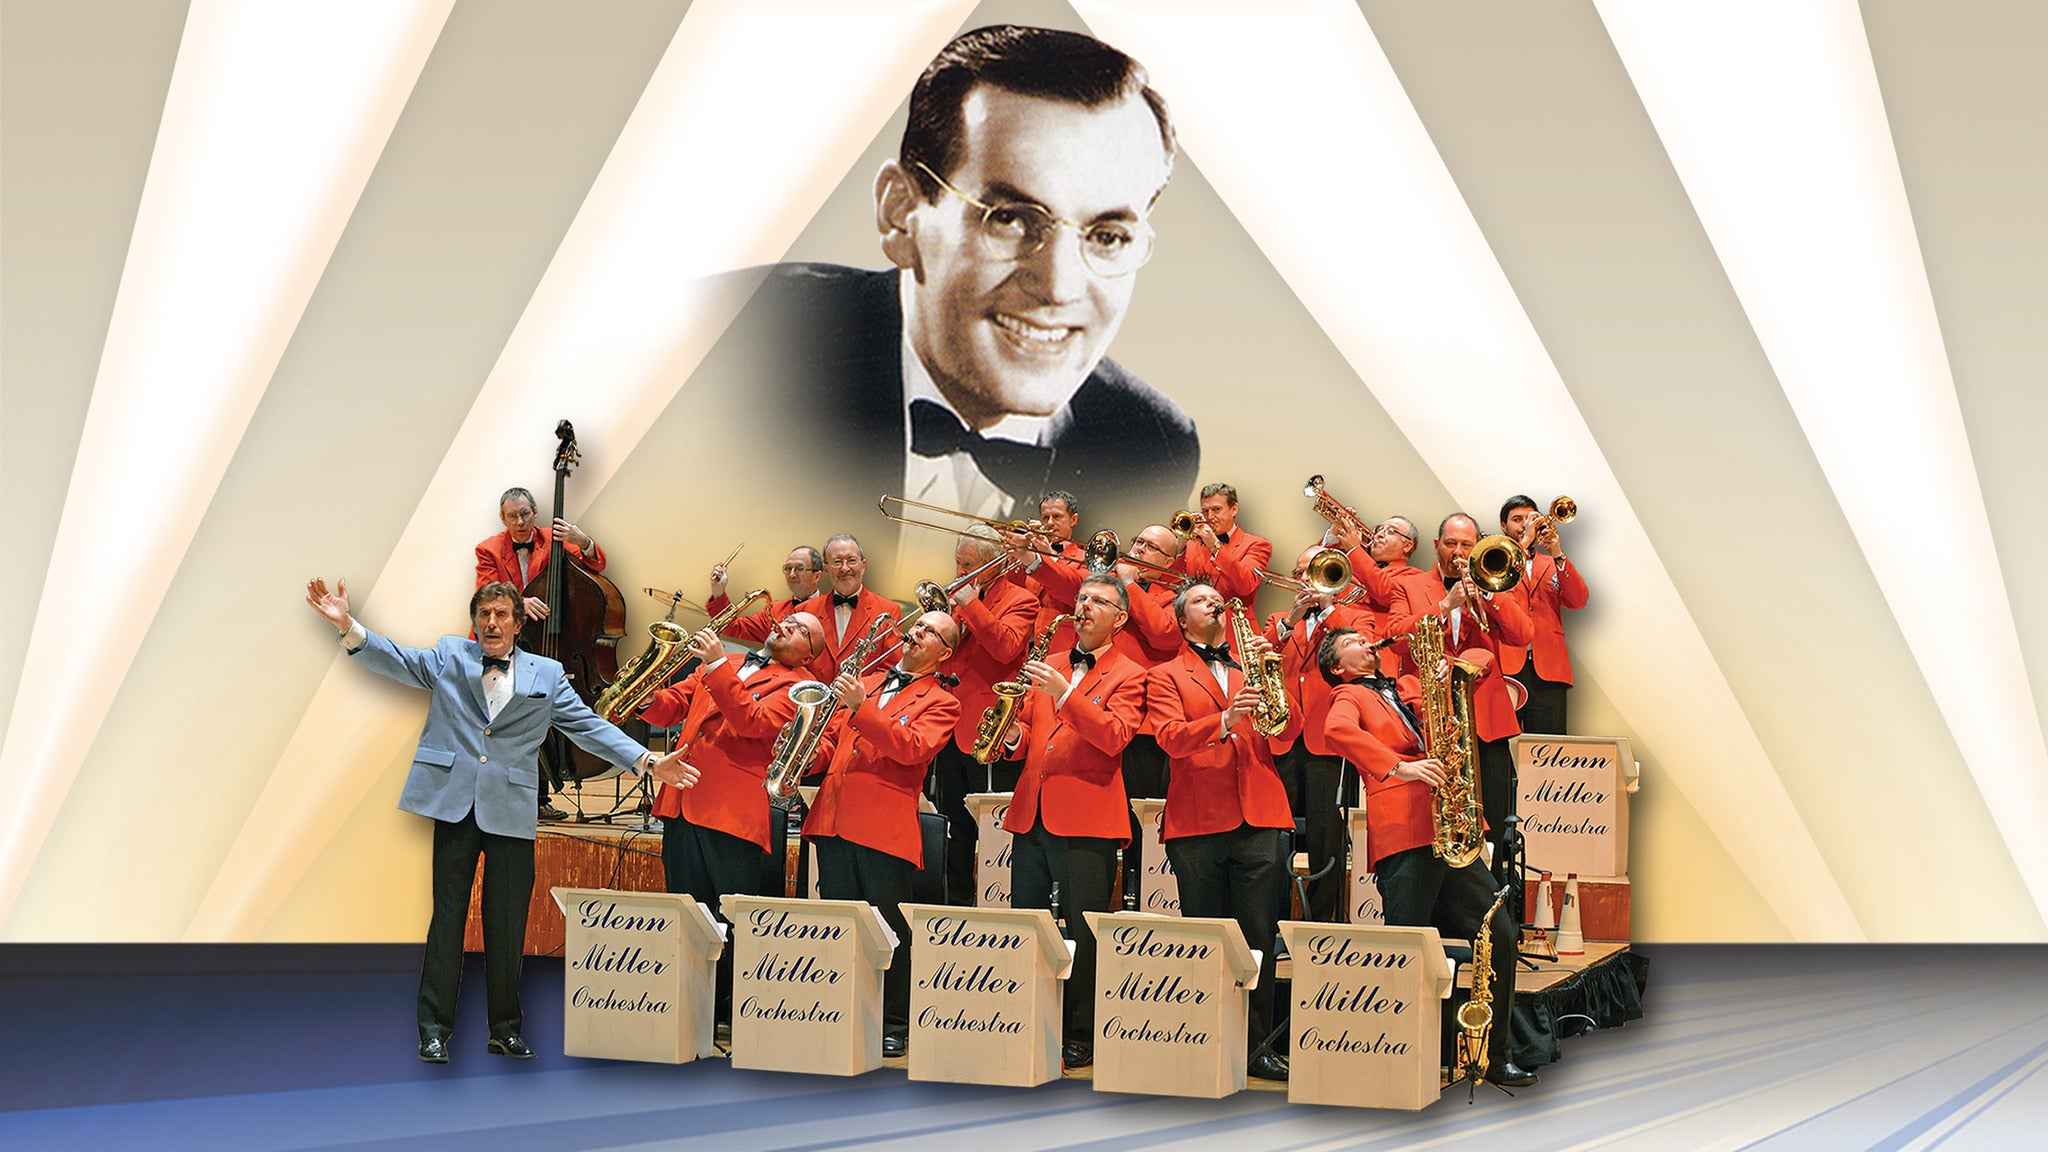 Glenn Miller Orchestra at Ridgefield Playhouse - Ridgefield, CT 06877